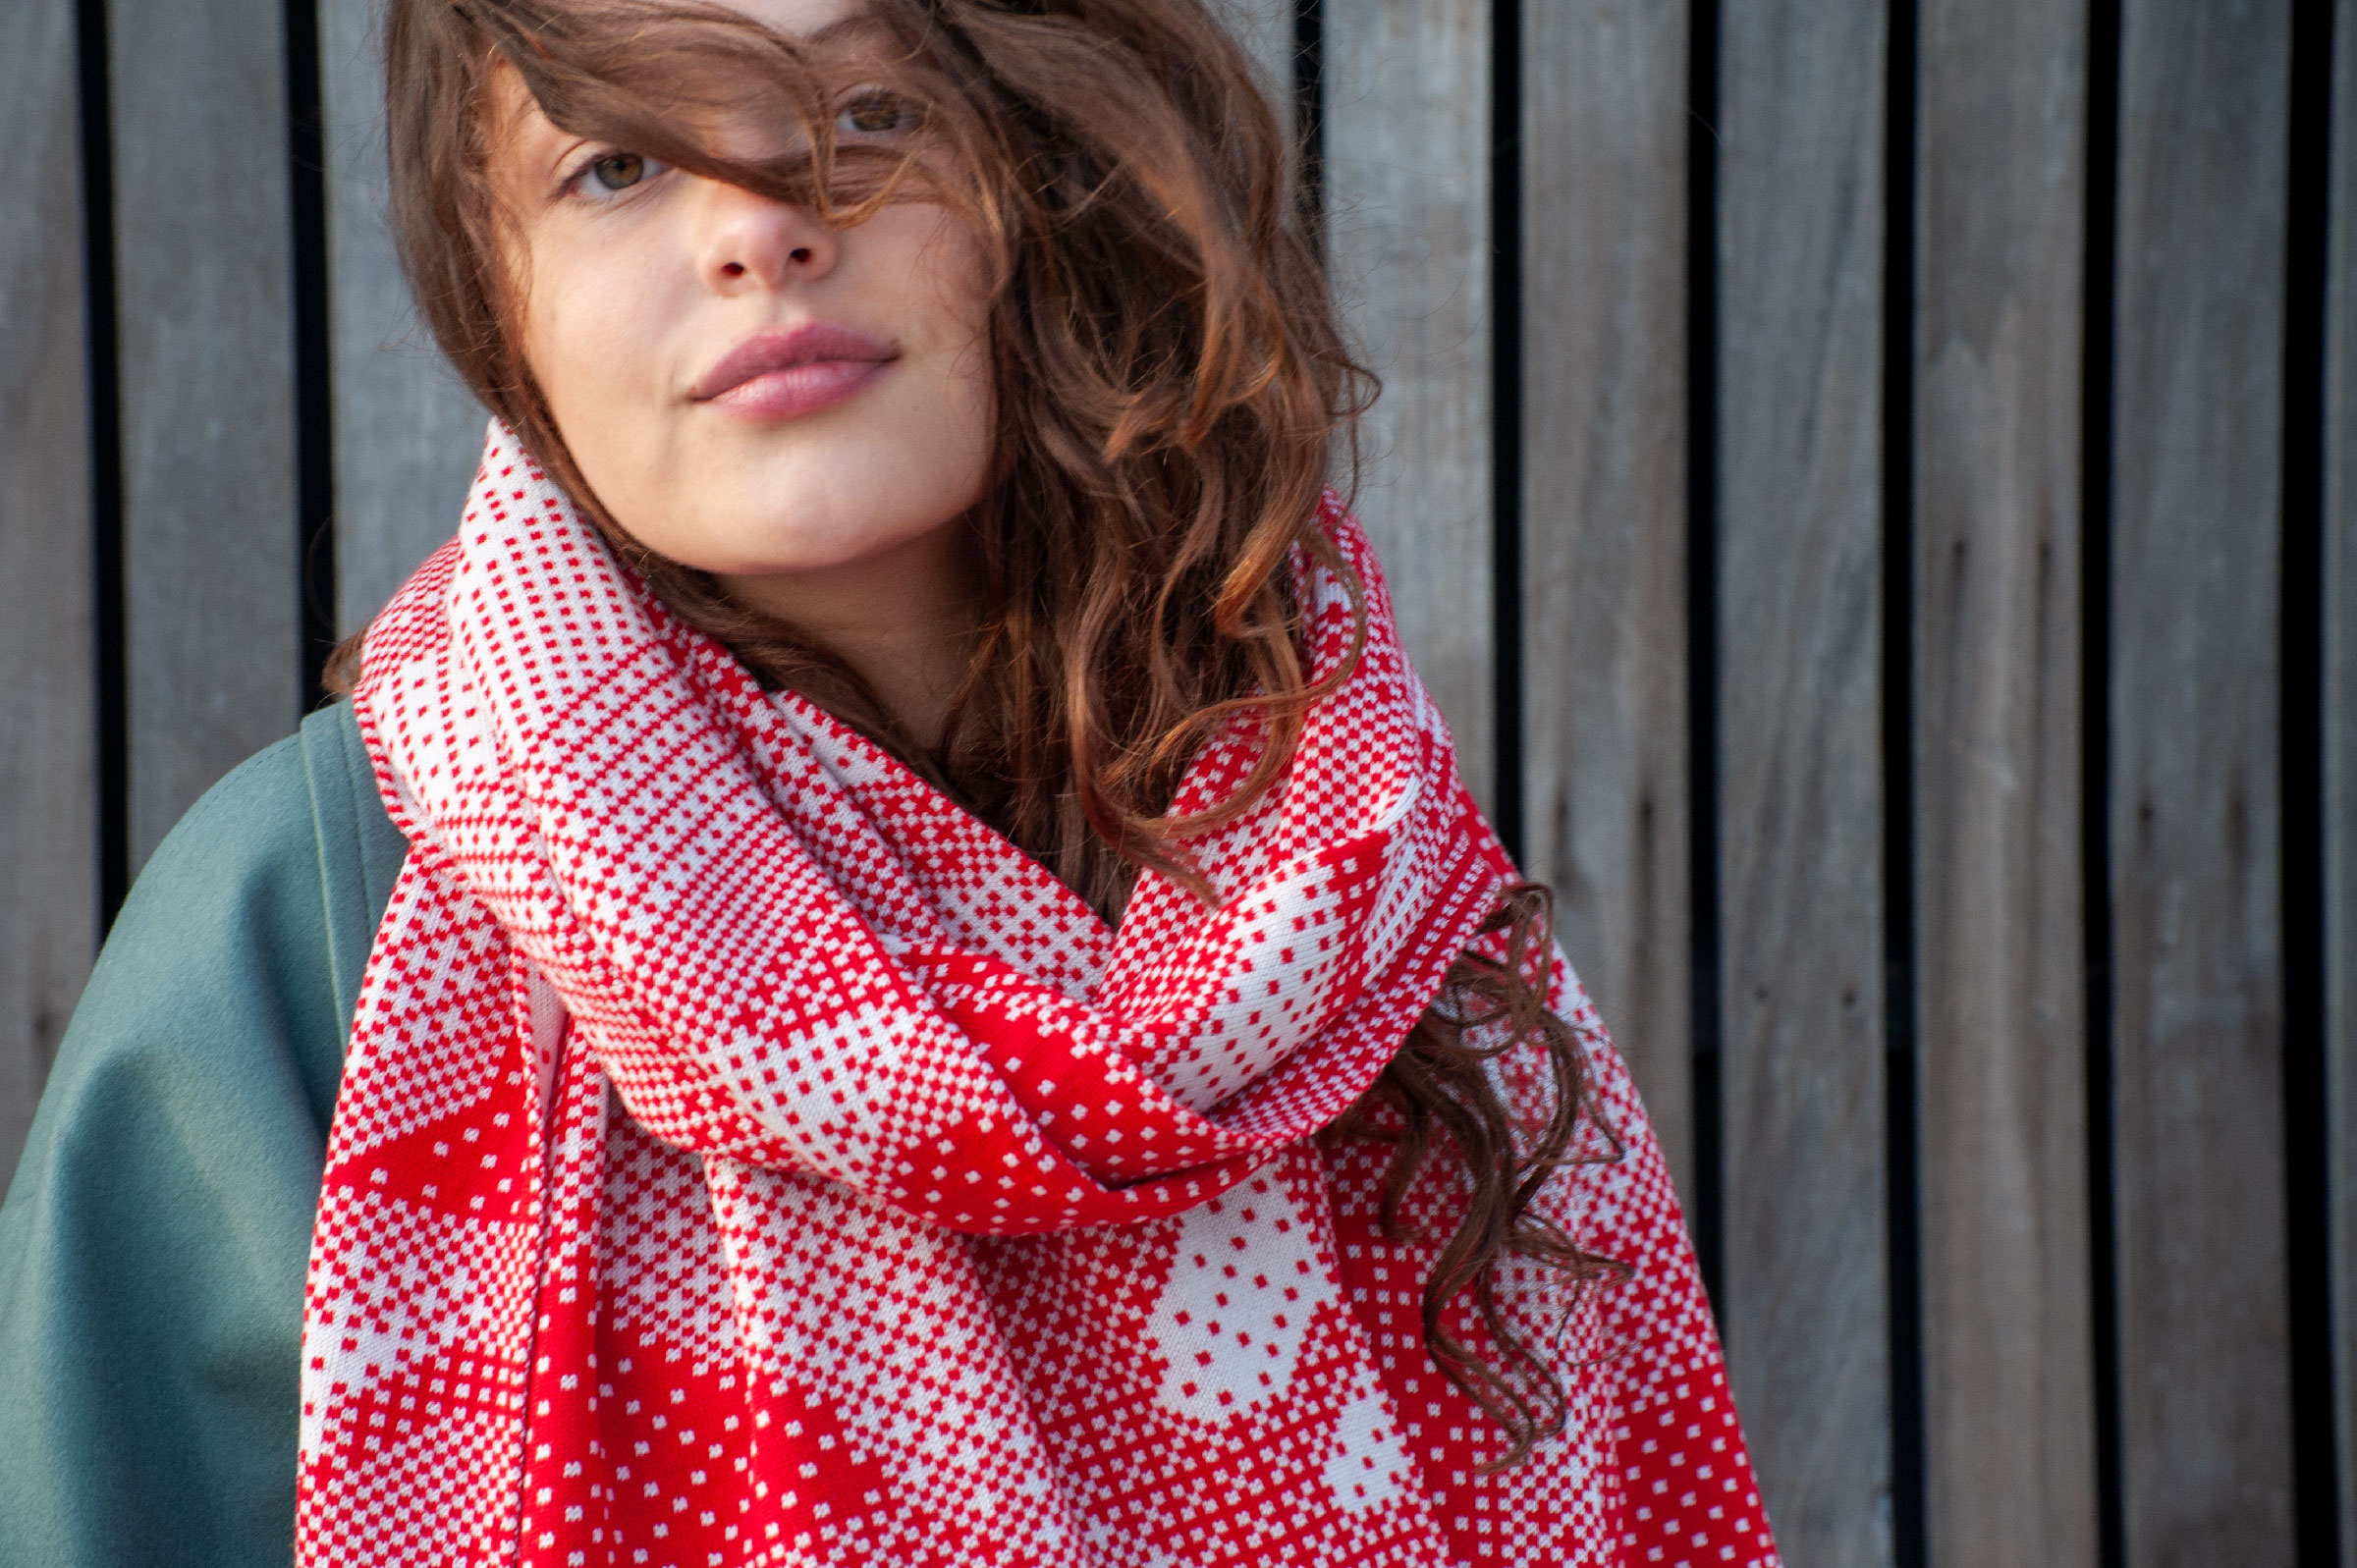 Pixelated roses scarf